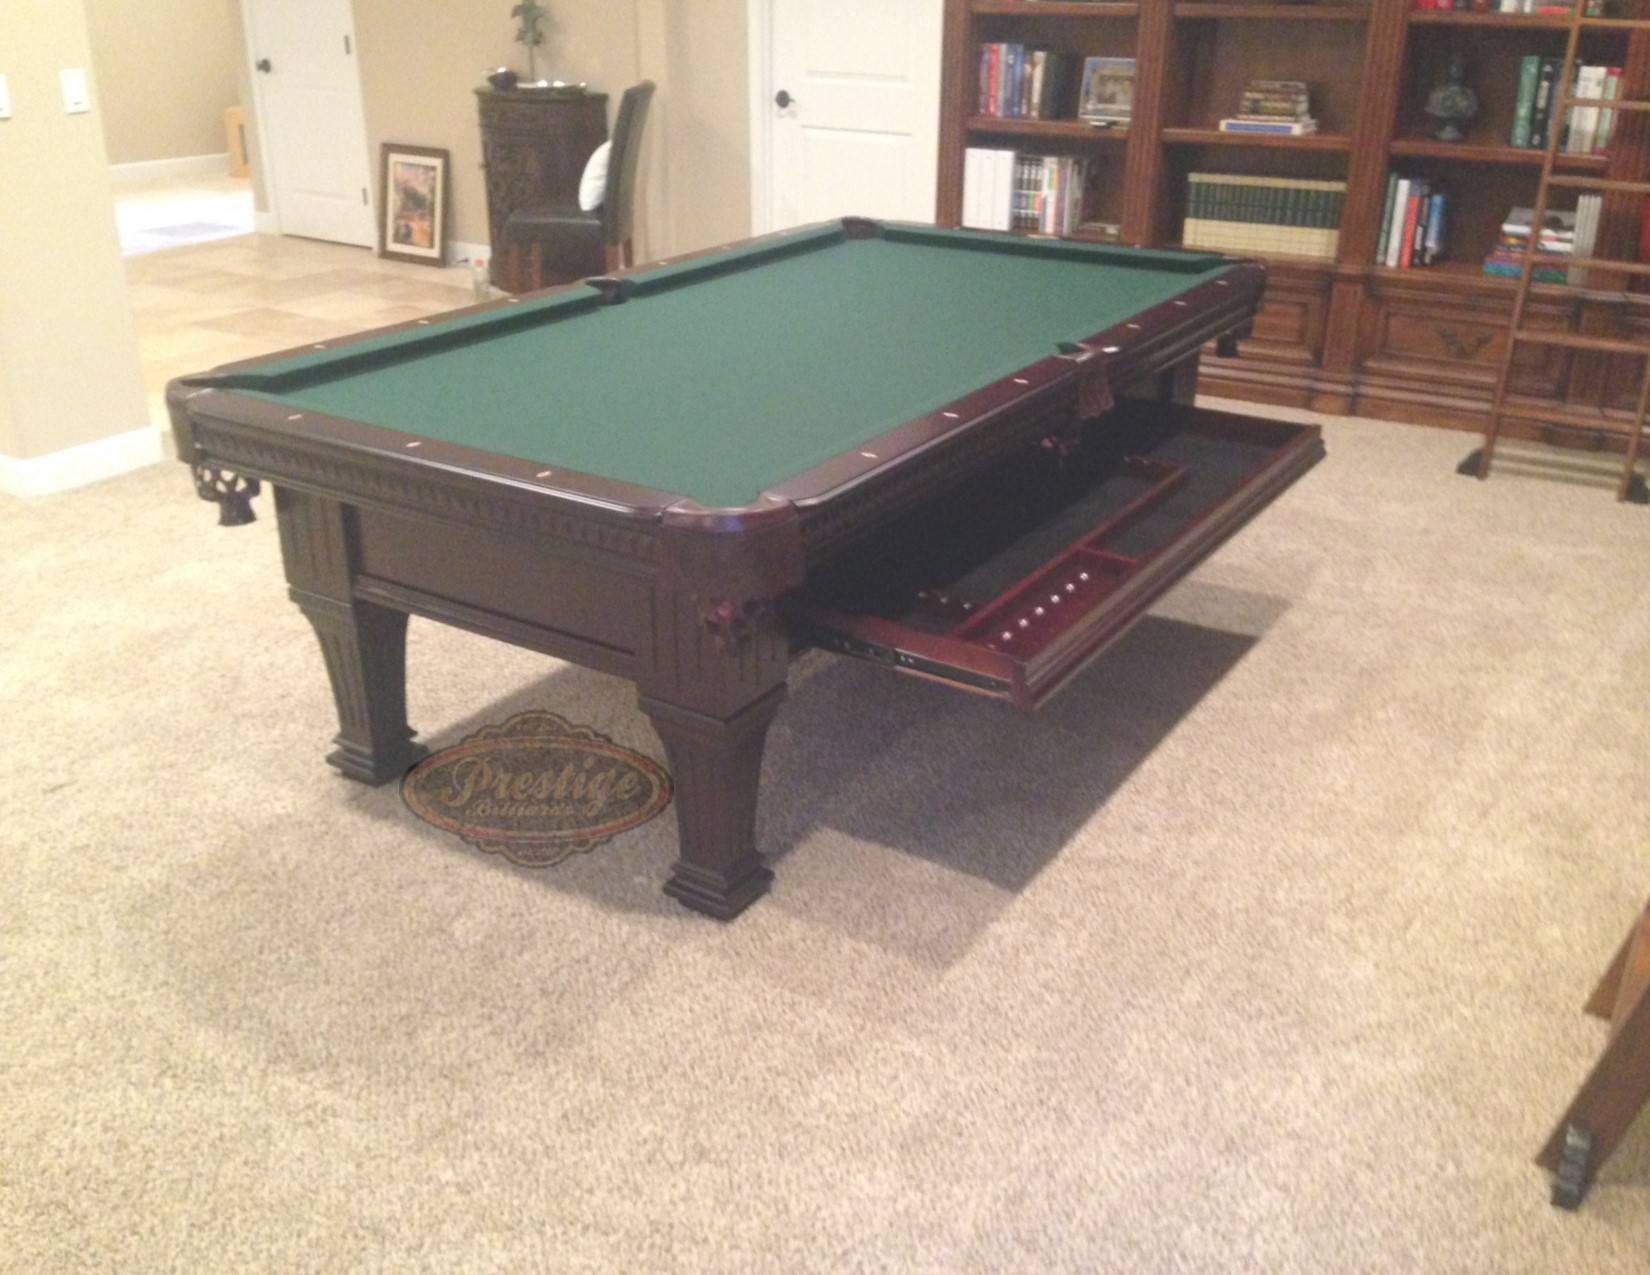 Ordinaire Ramsey Pool Table U2013 Ramsey Billiard Table By Imperial 8u0027   8ft   8 Foot U2013  Antique Walnut